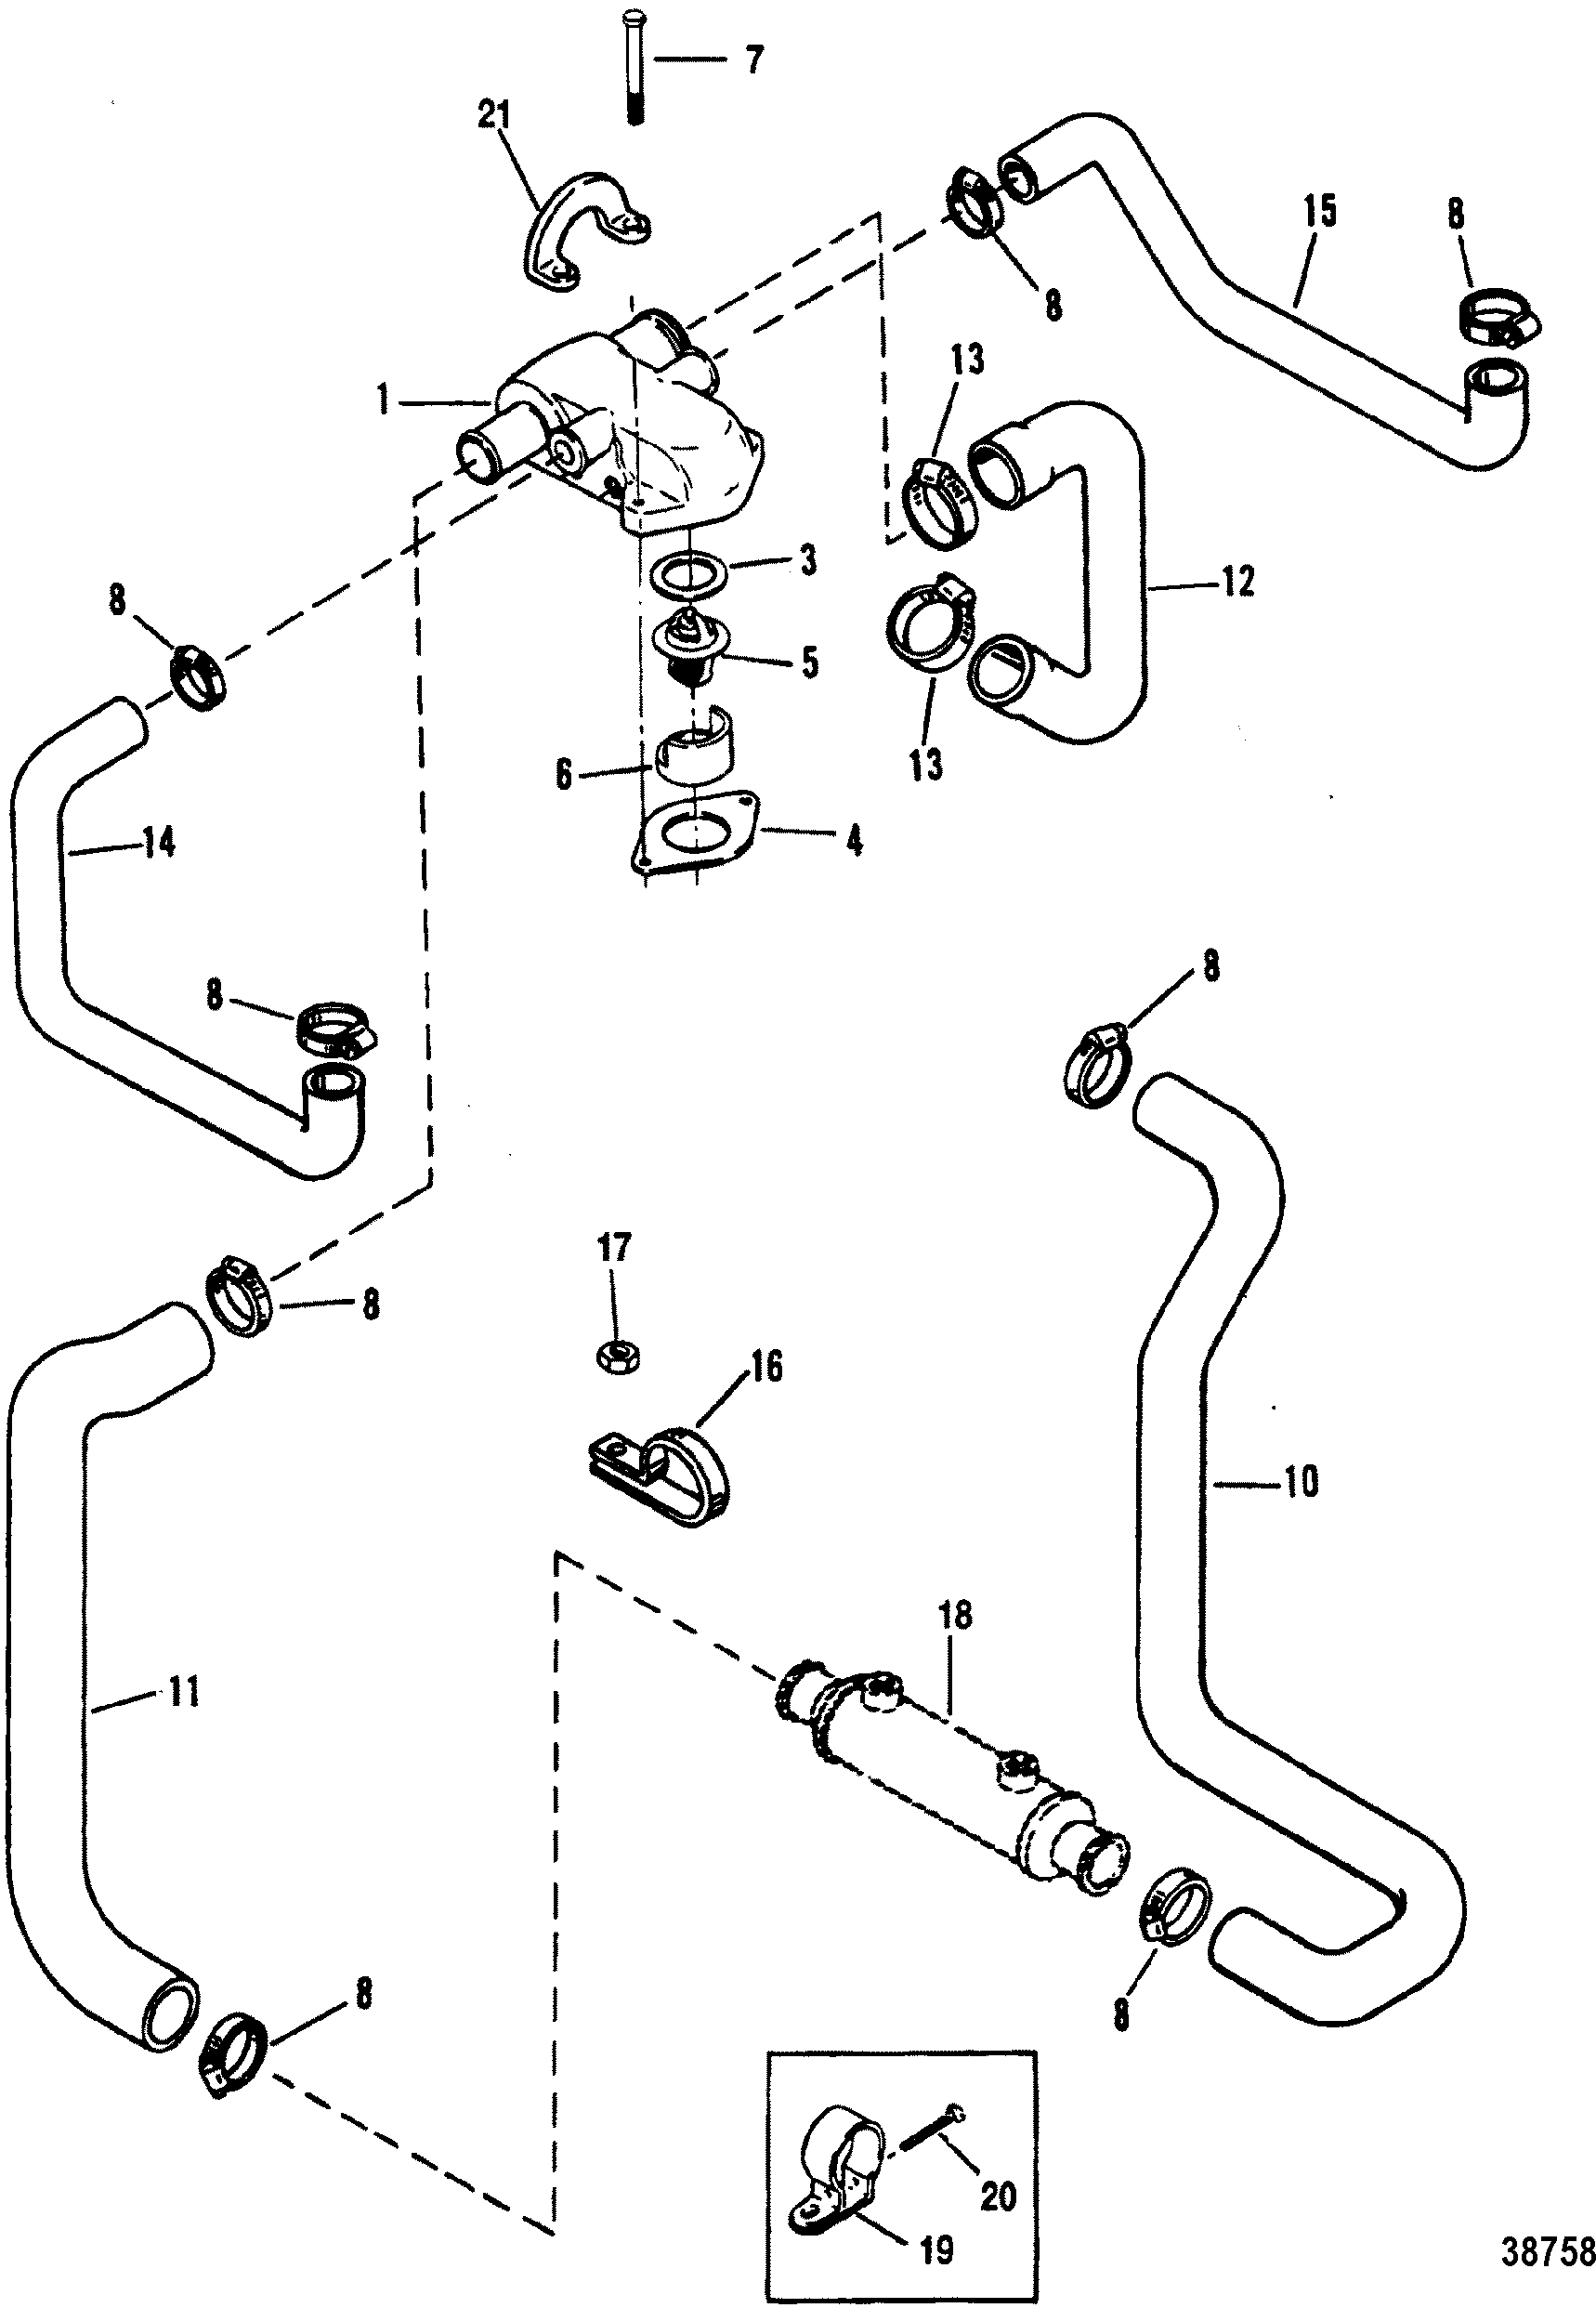 Standard Cooling System Design Ii For Mercruiser 4 3l 4 3lx Alpha One Engine 262 Cid Gen Ii